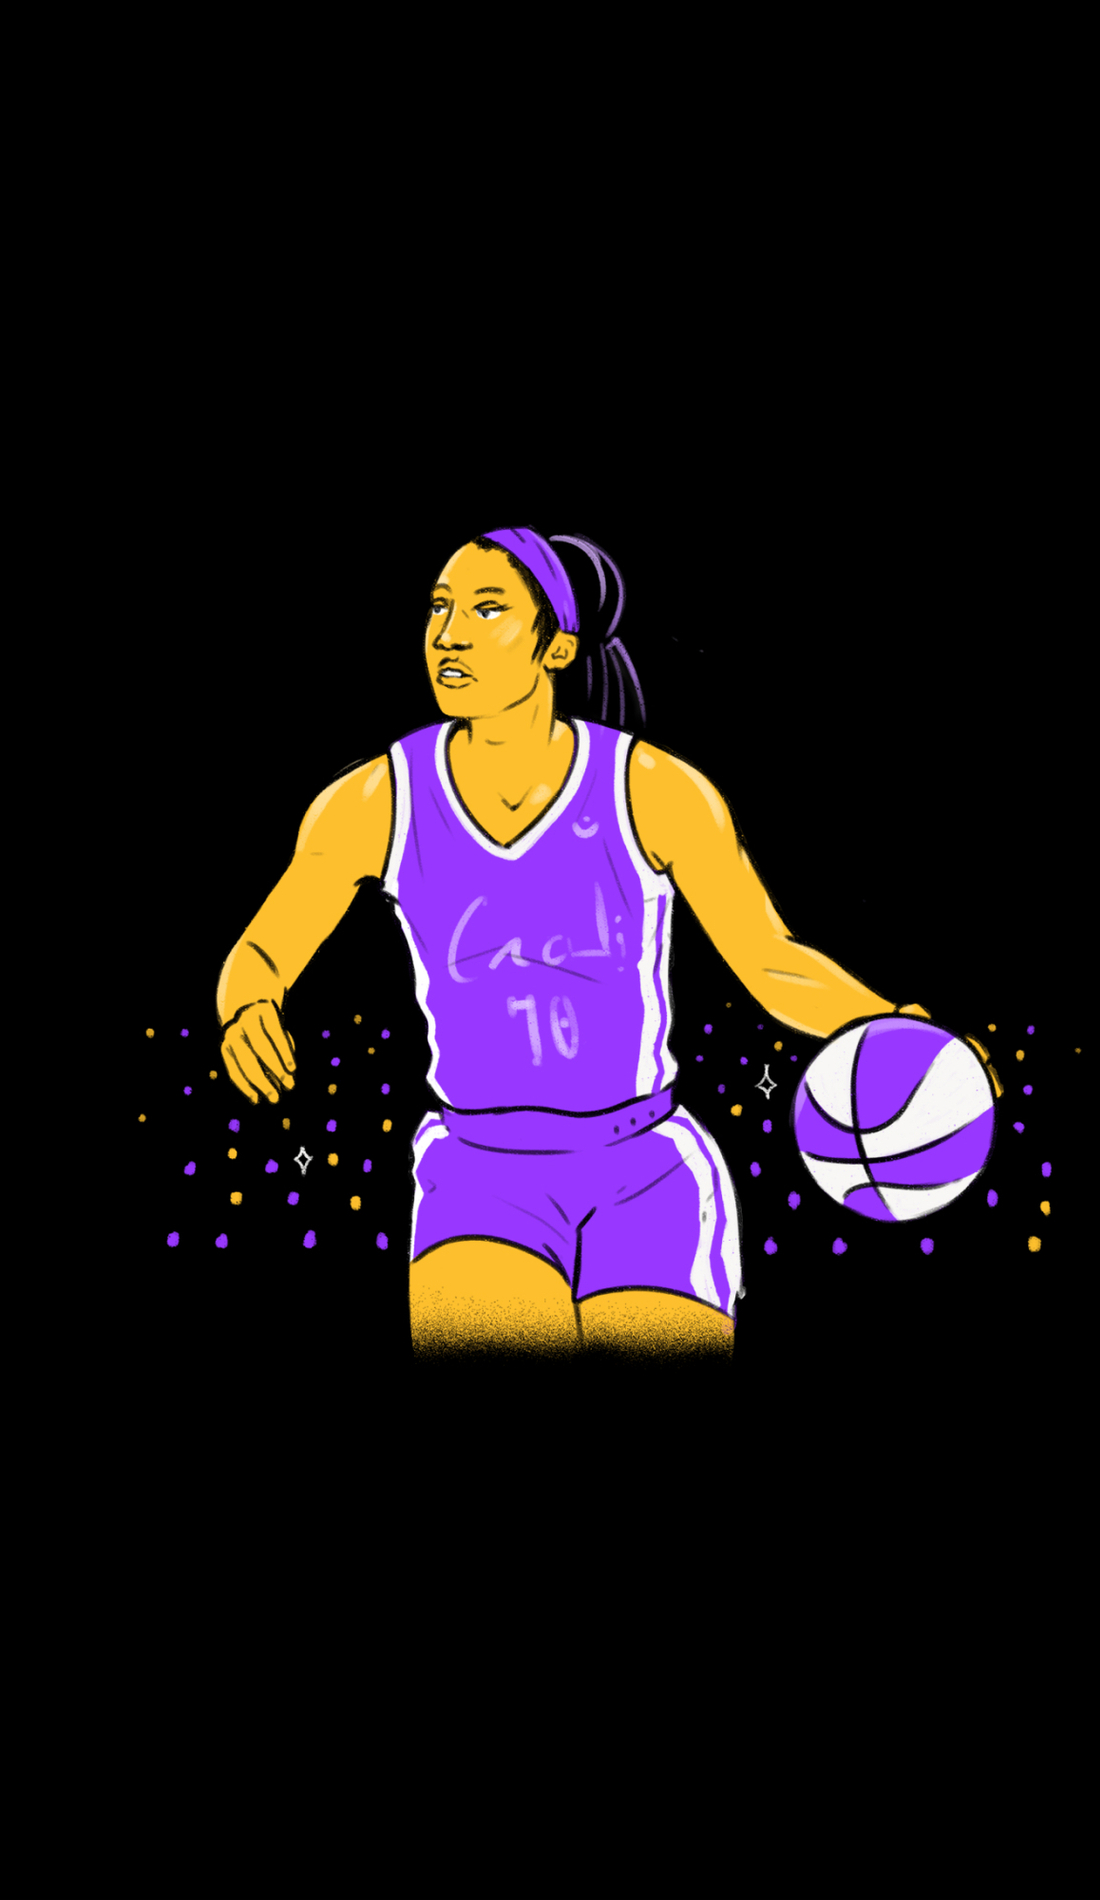 A Jacksonville Dolphins Womens Basketball live event